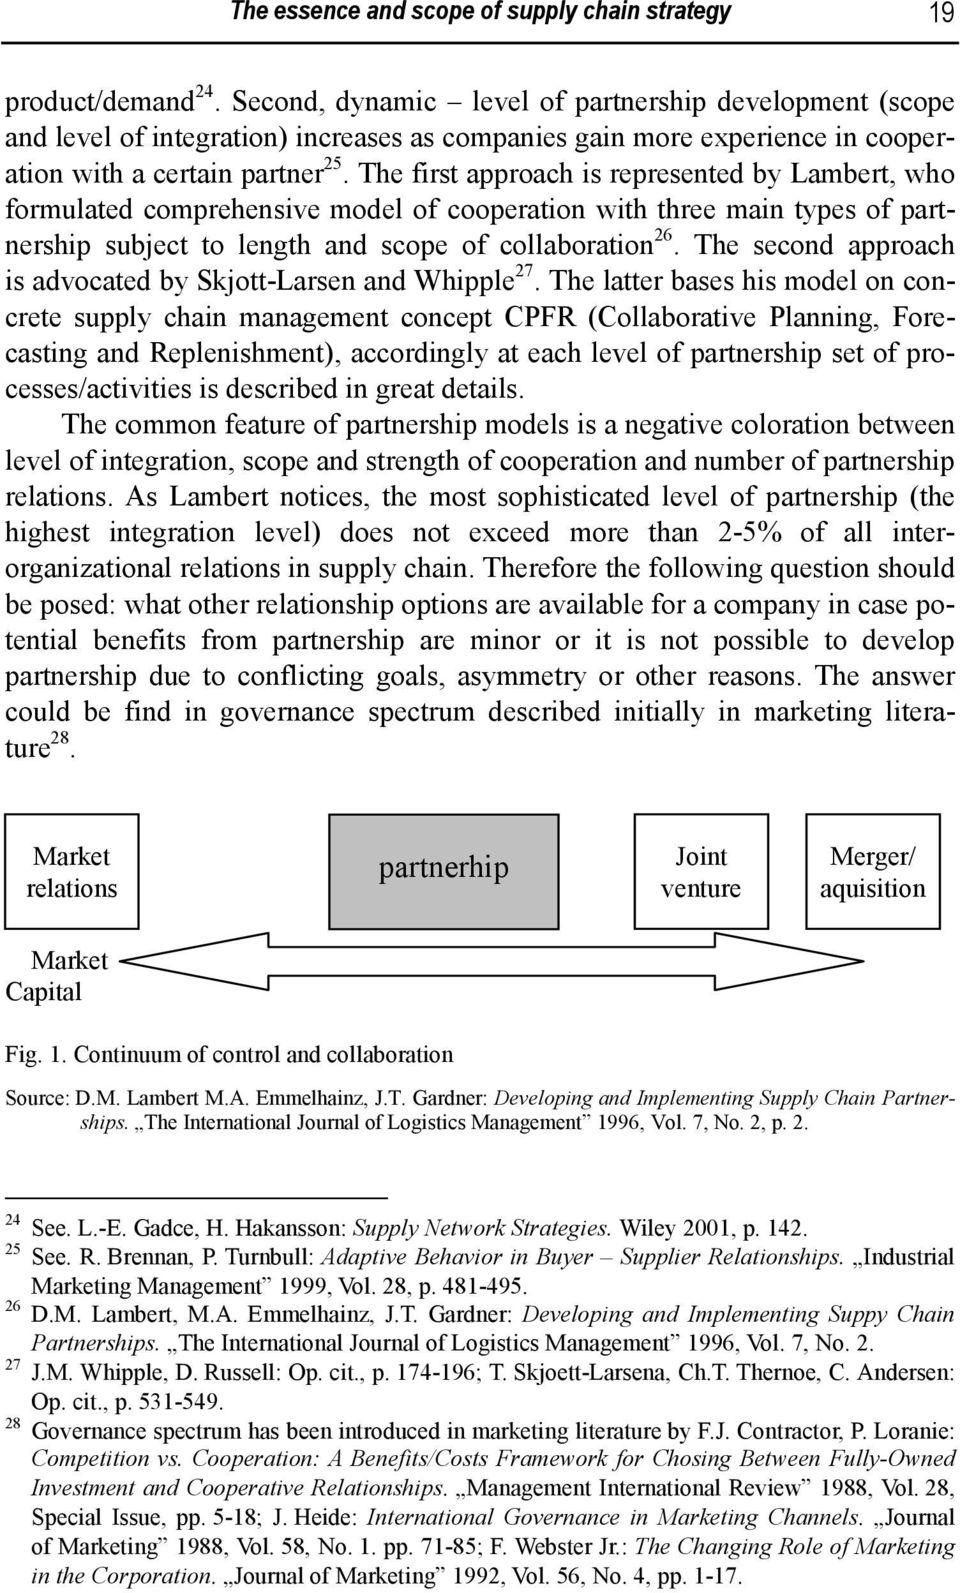 The first approach is represented by Lambert, who formulated comprehensive model of cooperation with three main types of partnership subject to length and scope of collaboration 26.